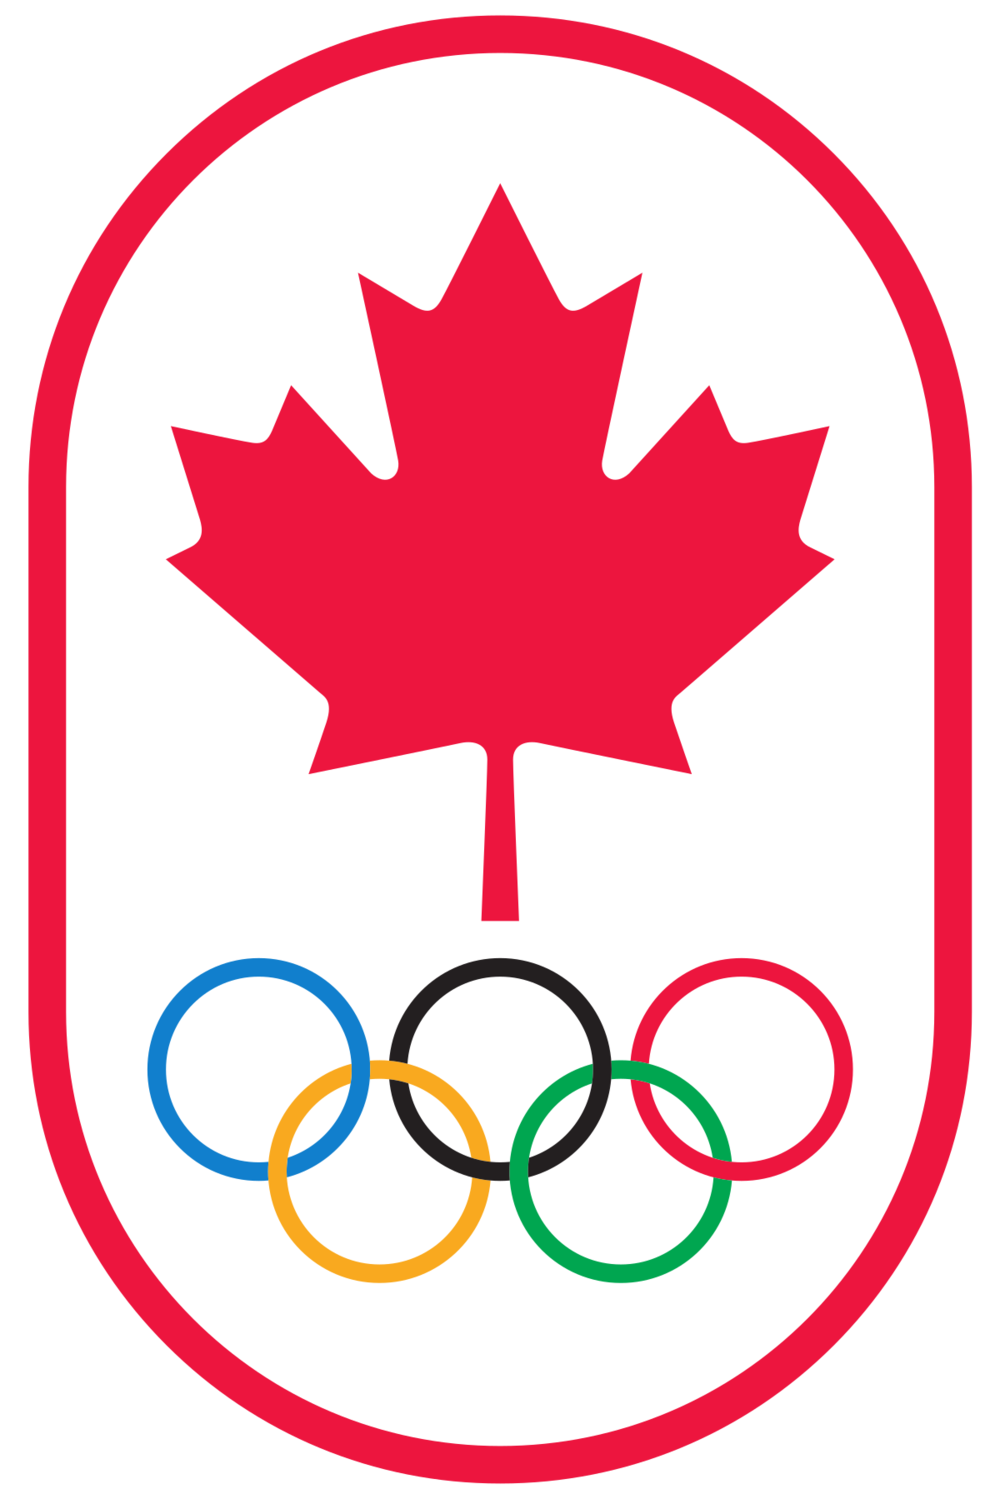 Canadian_Olympic_Committee_Logo.png